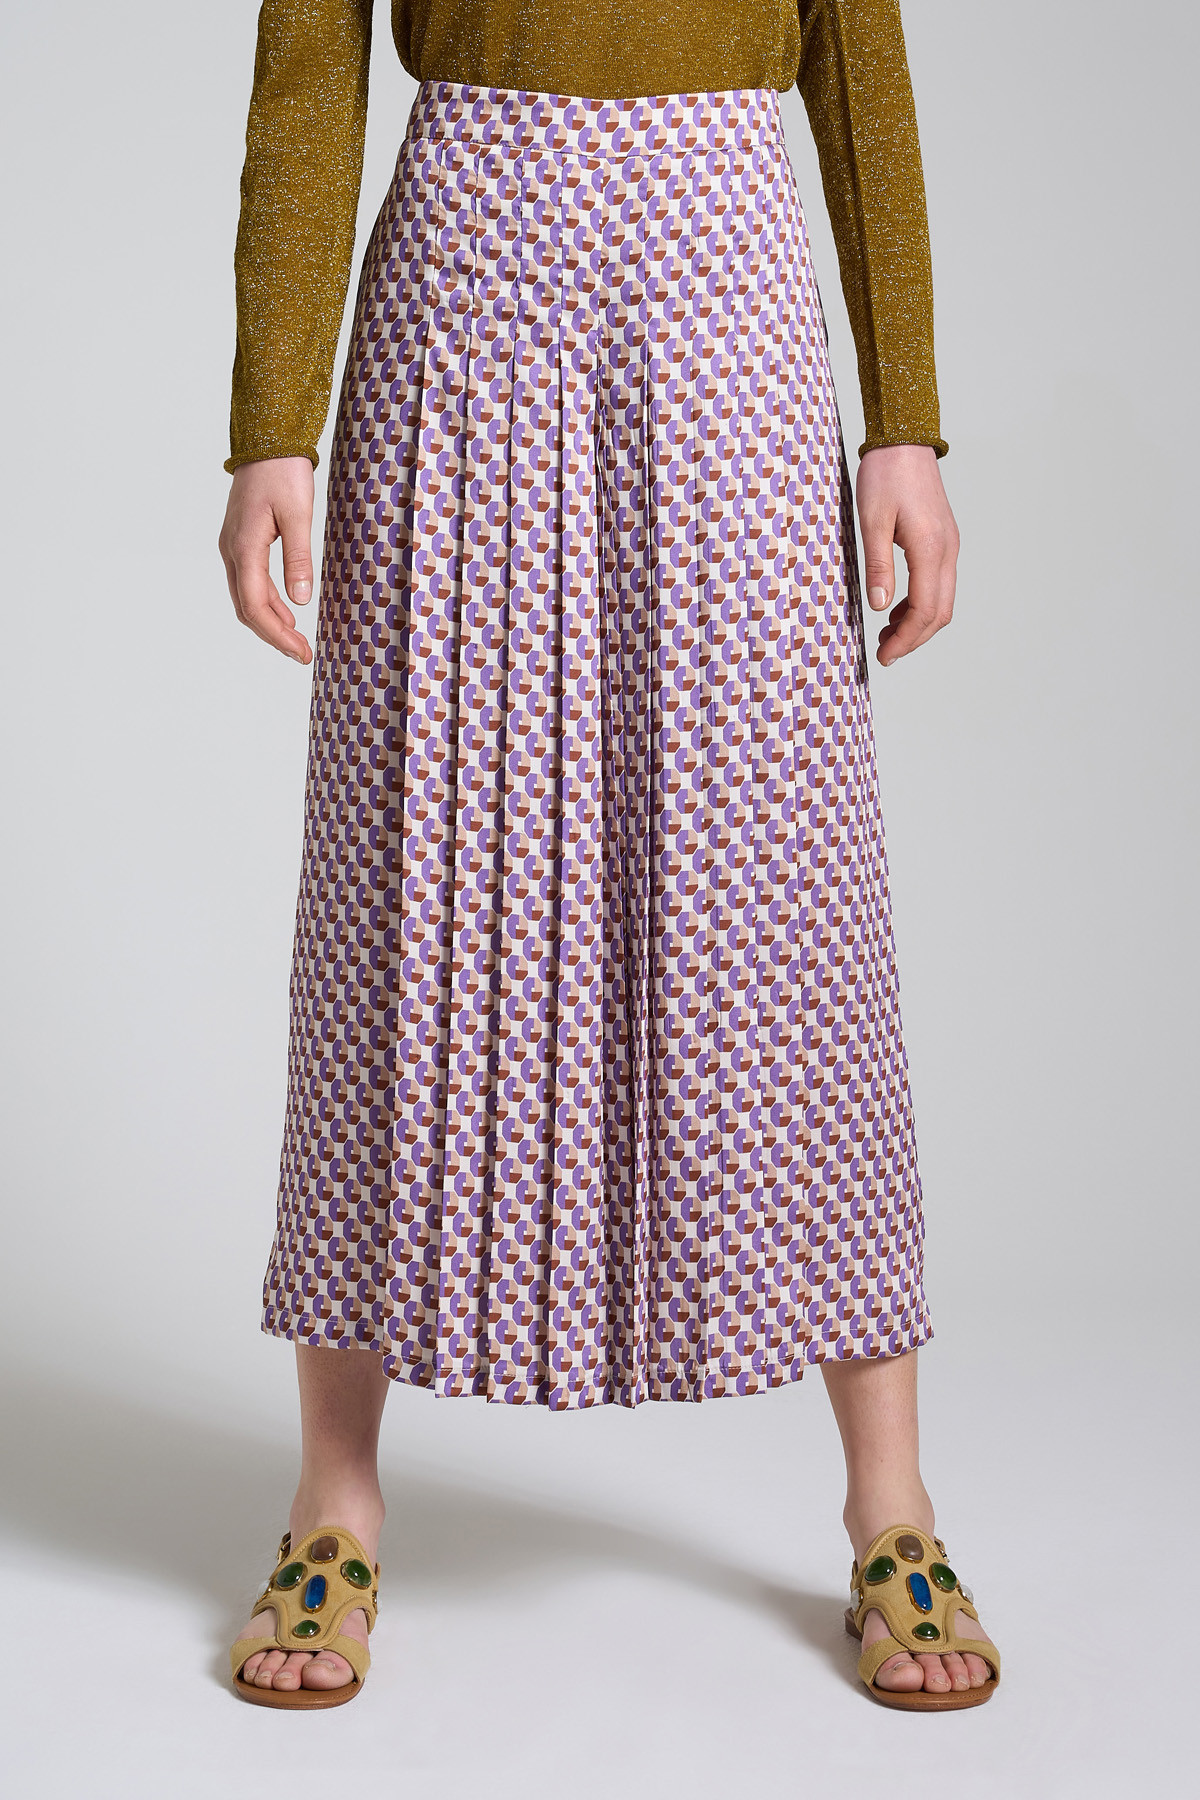 Women's Clothing Beige and Purple Patterned Geometric Twill Pants with Wide Leg Maliparmi | Skirts and Pants | JH745860047B1236